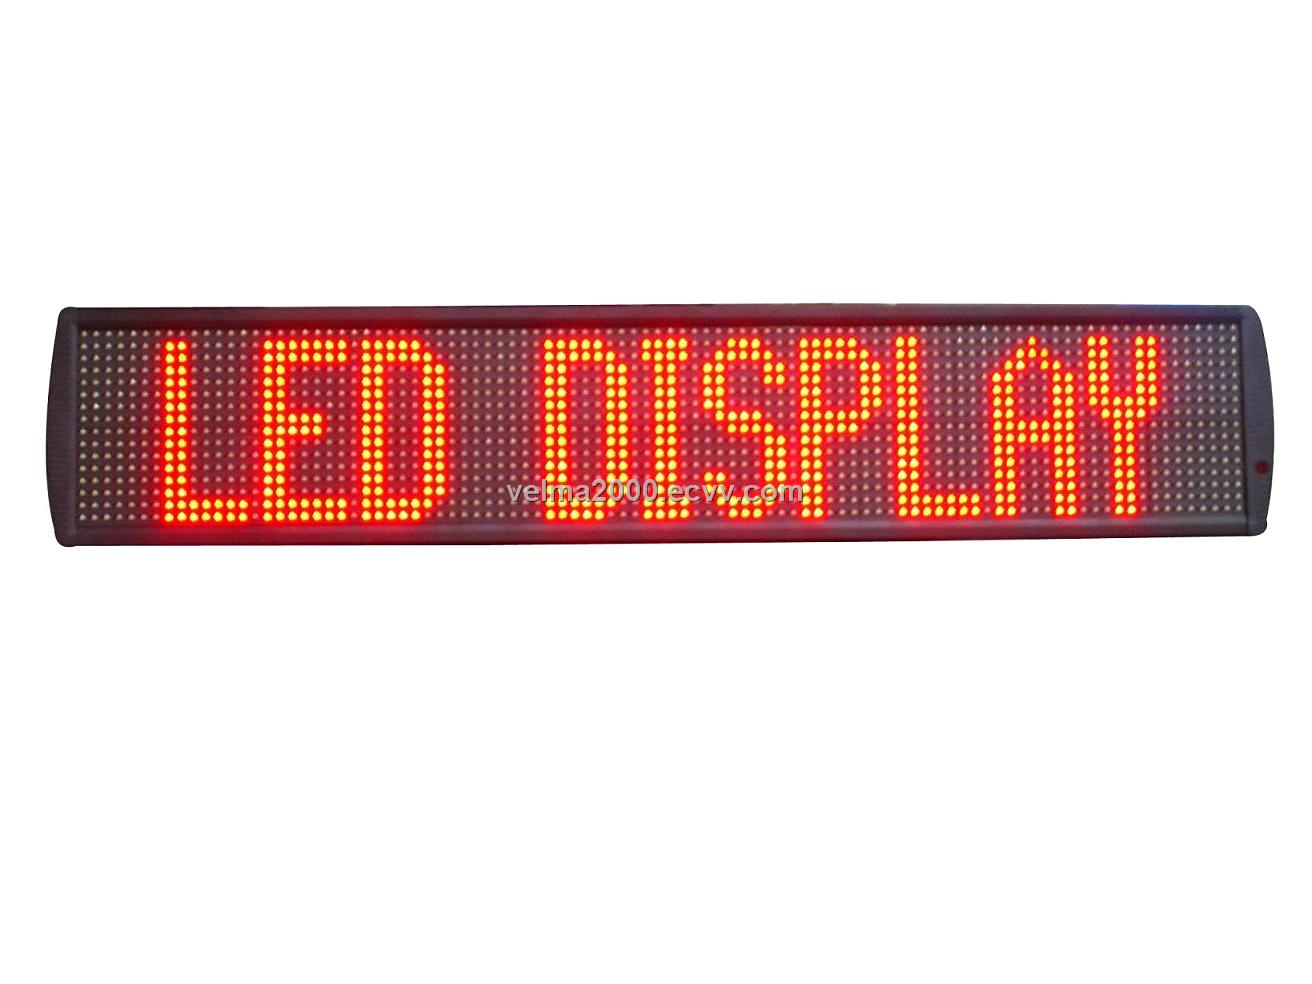 Window/ Semi-outdoor LED display Pitch: 11.43mm